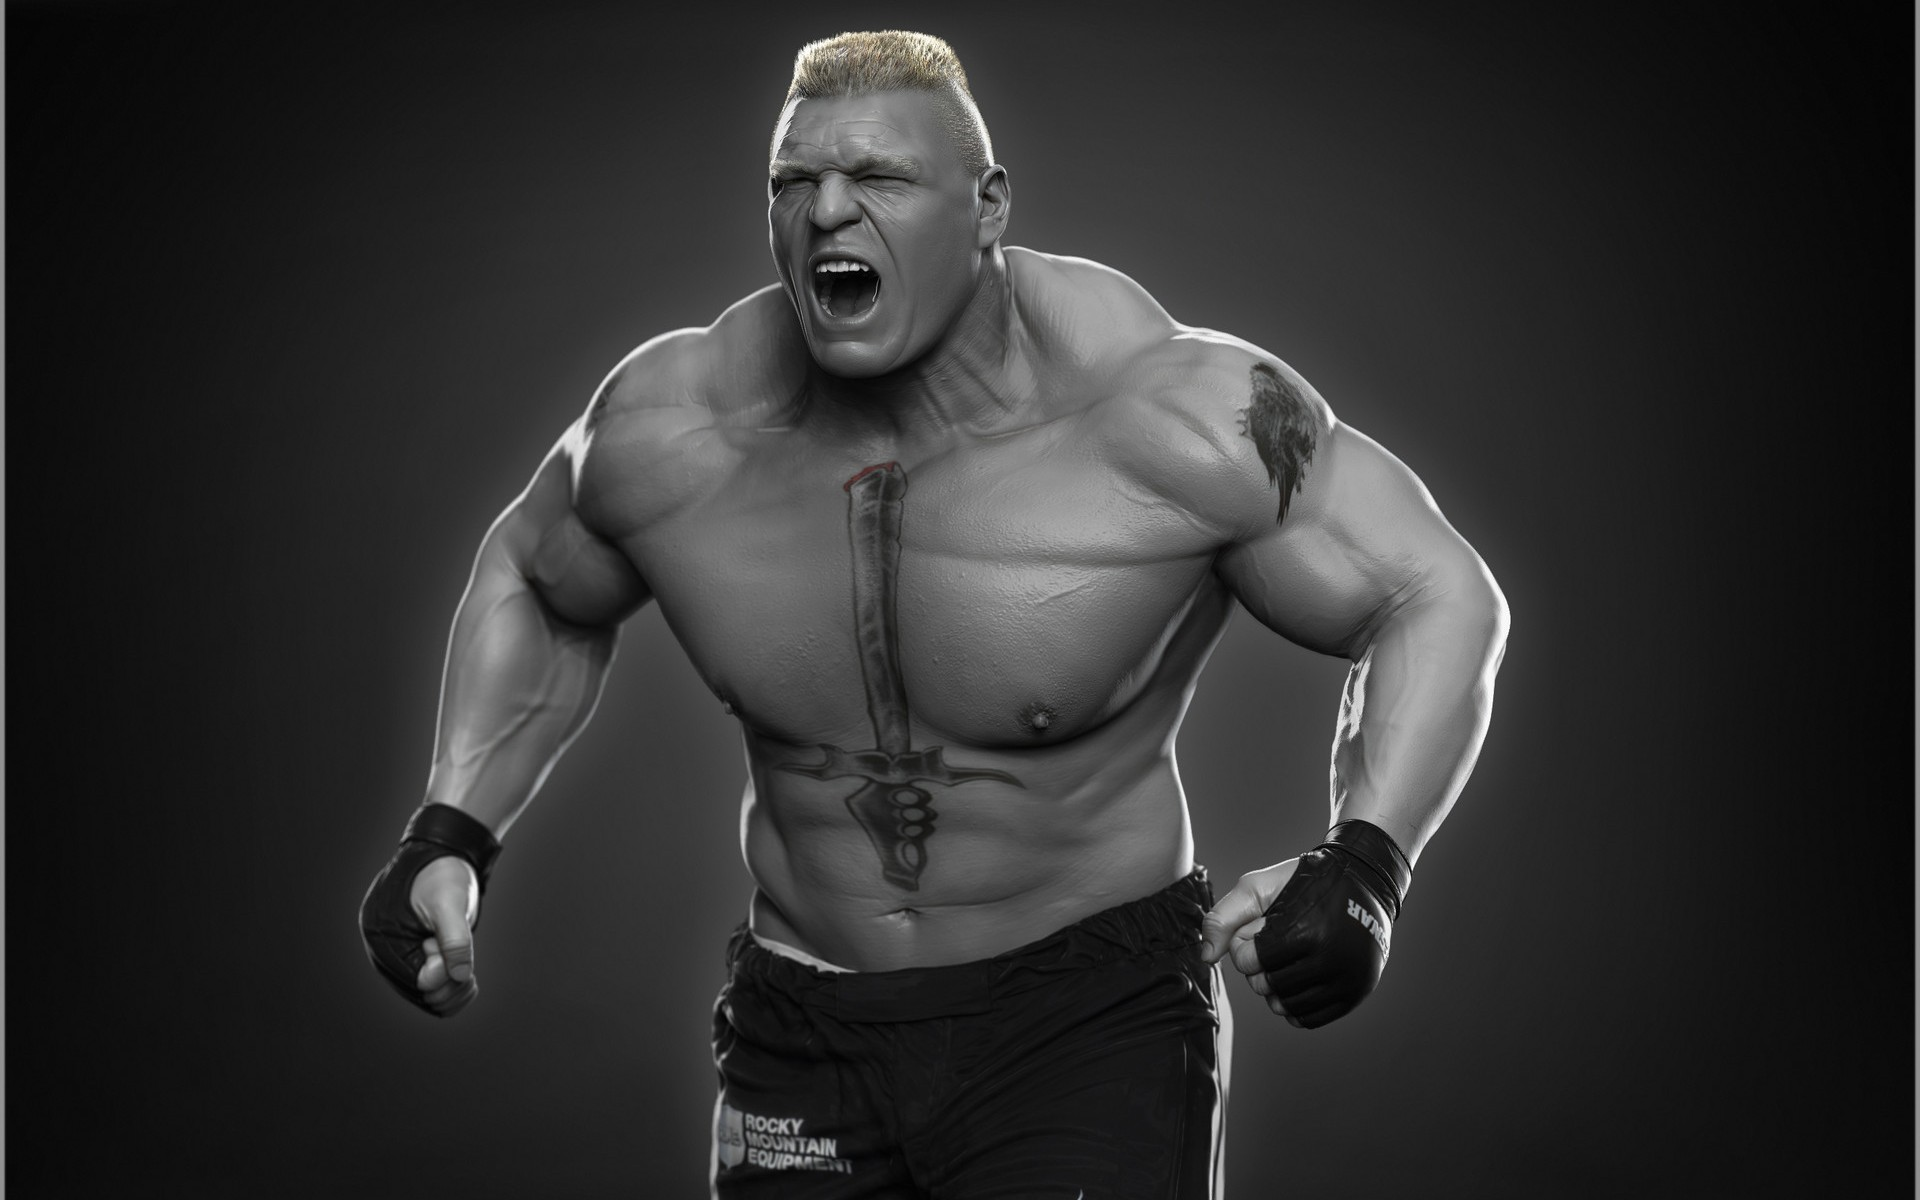 brock lesnar 3d wallpapers